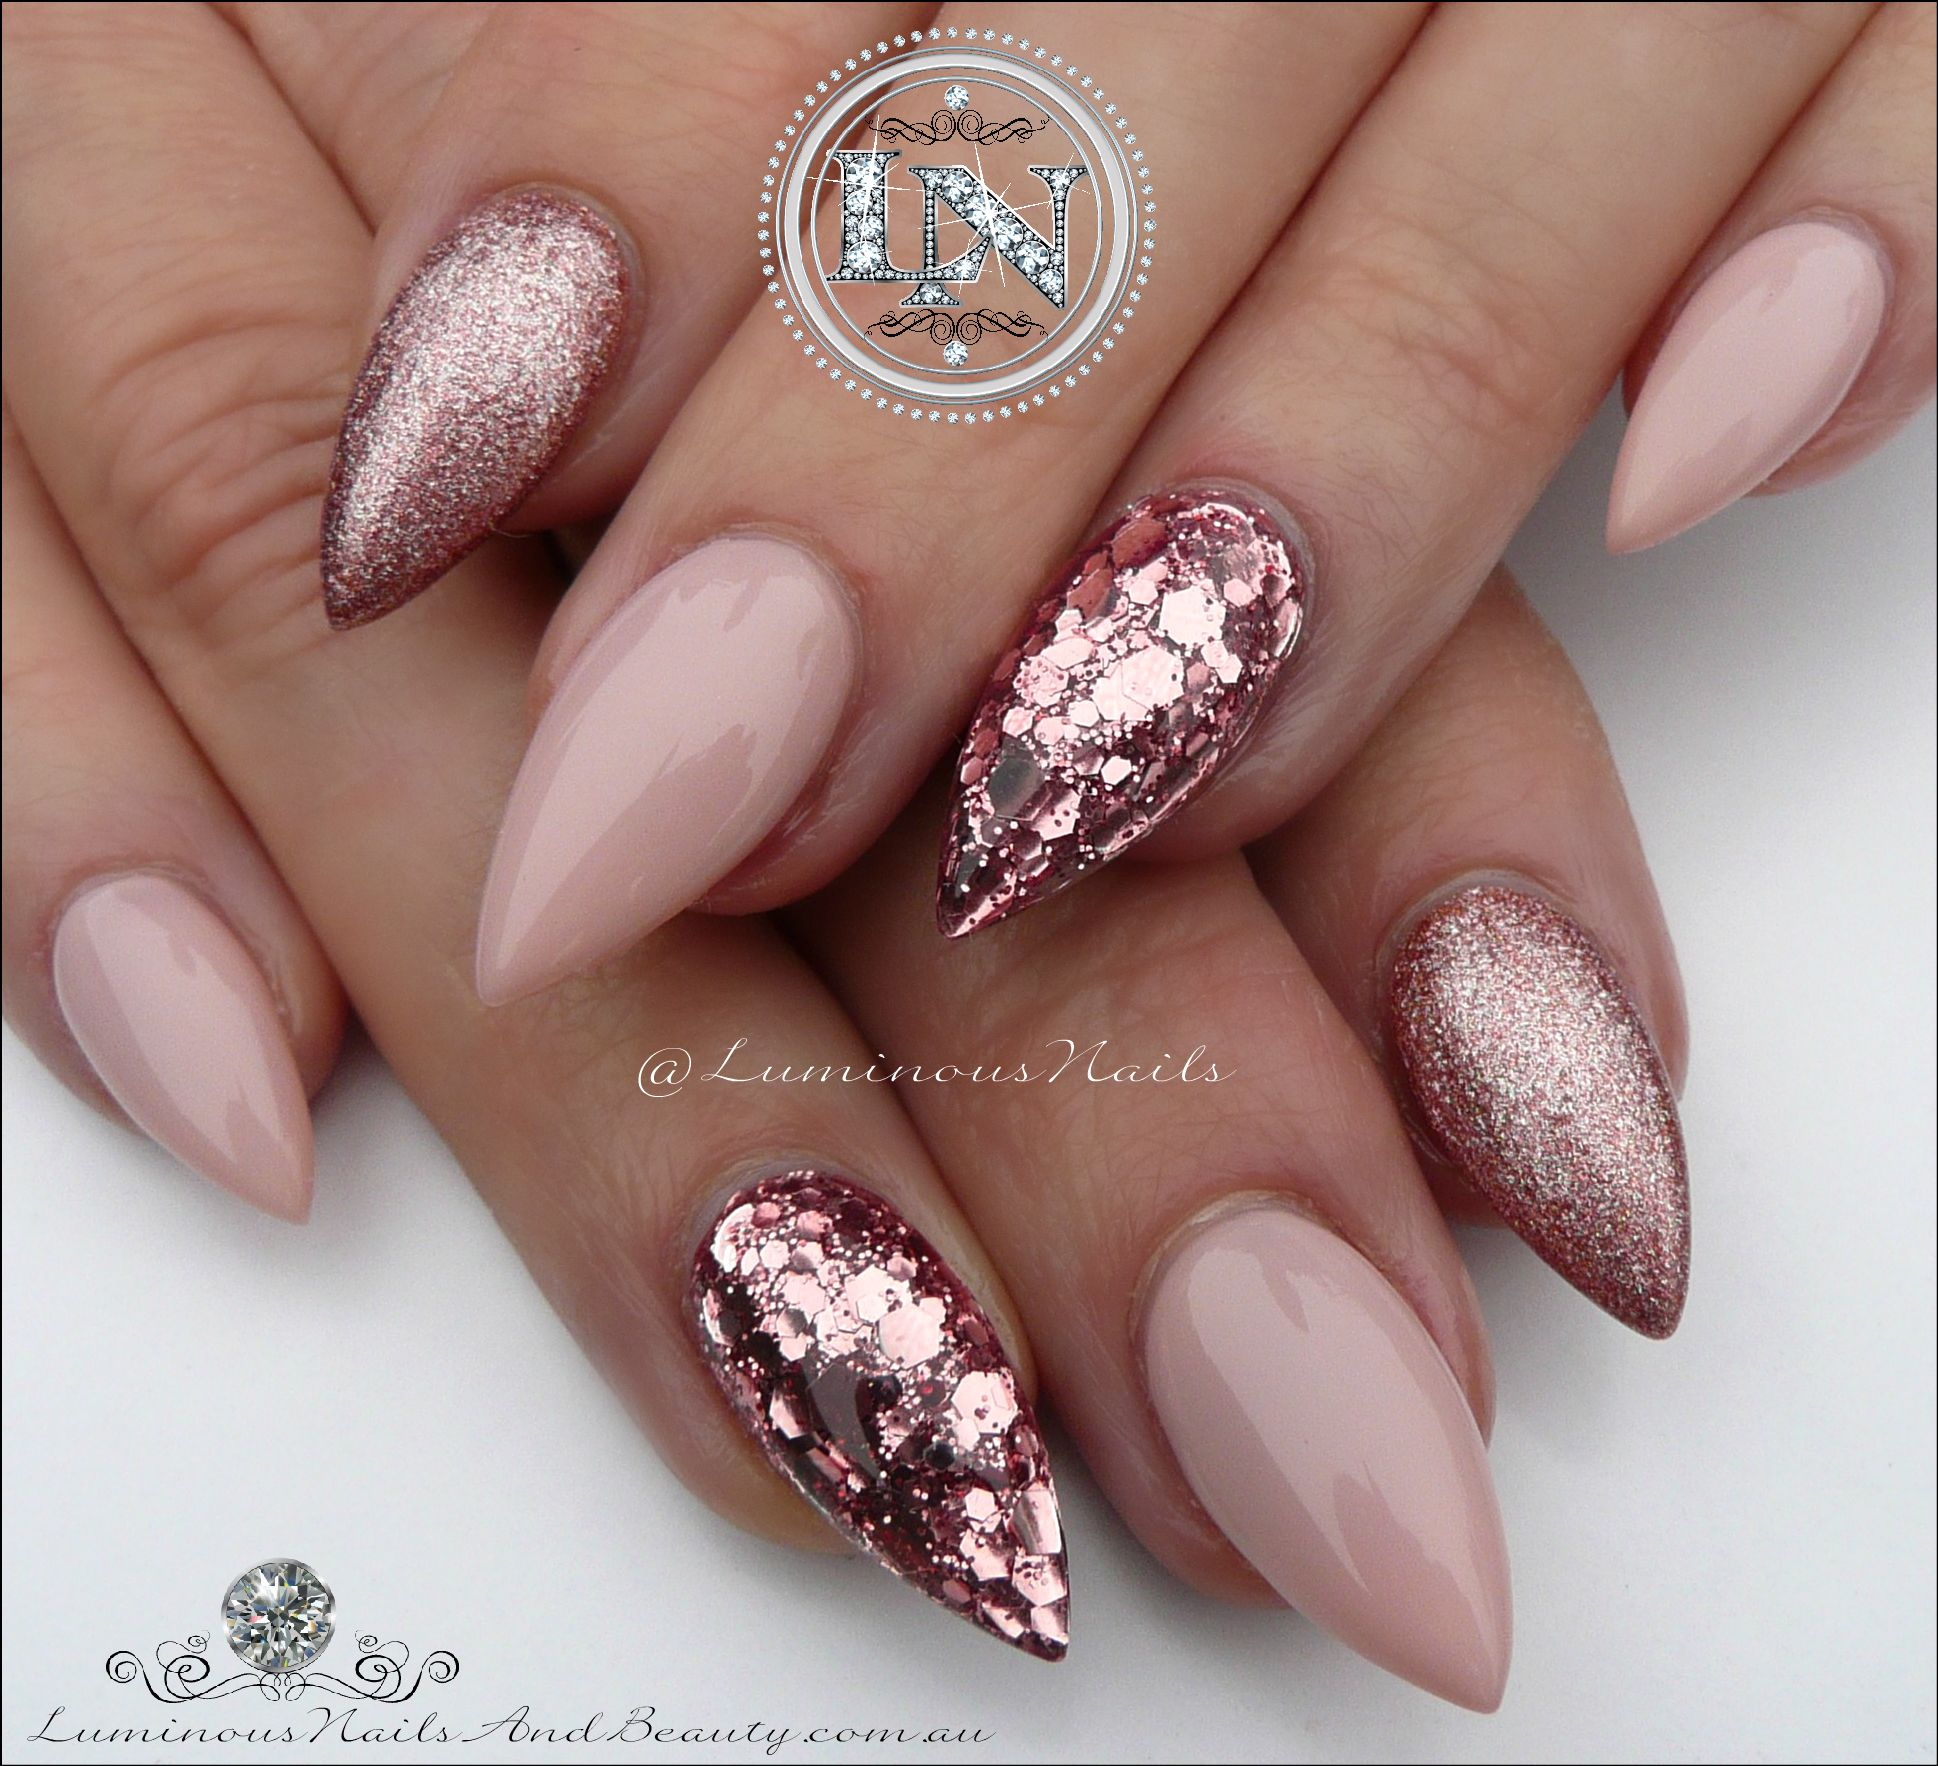 luminous-nails-beauty-gold-coast-qld.-rose-gold-nails.-soft-pink ...